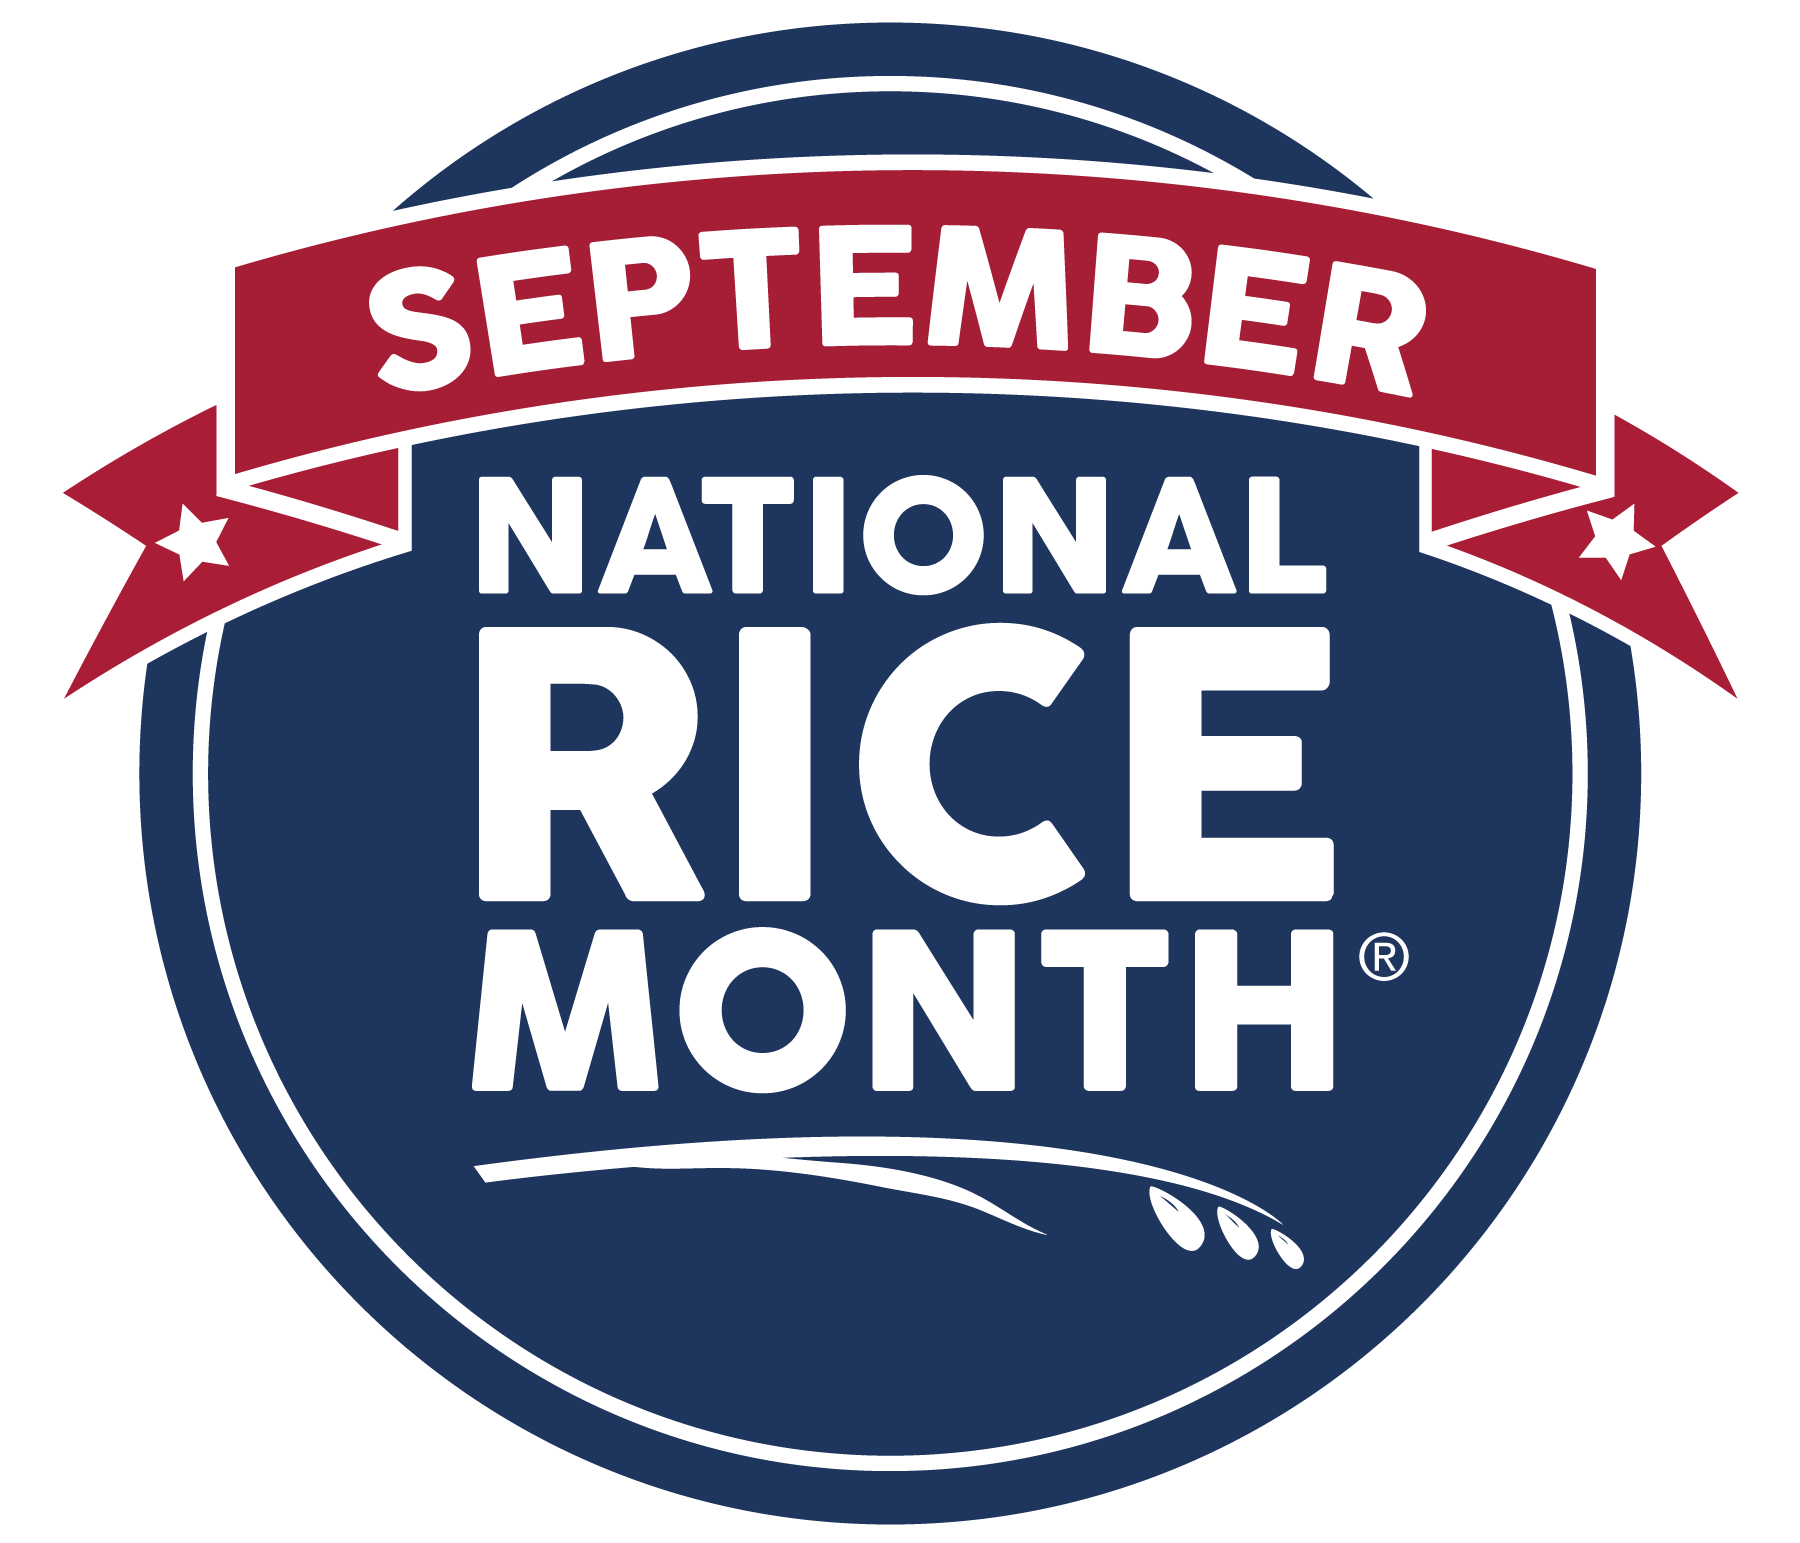 National Rice Month Logo, blue circle with white text and red banner across the top